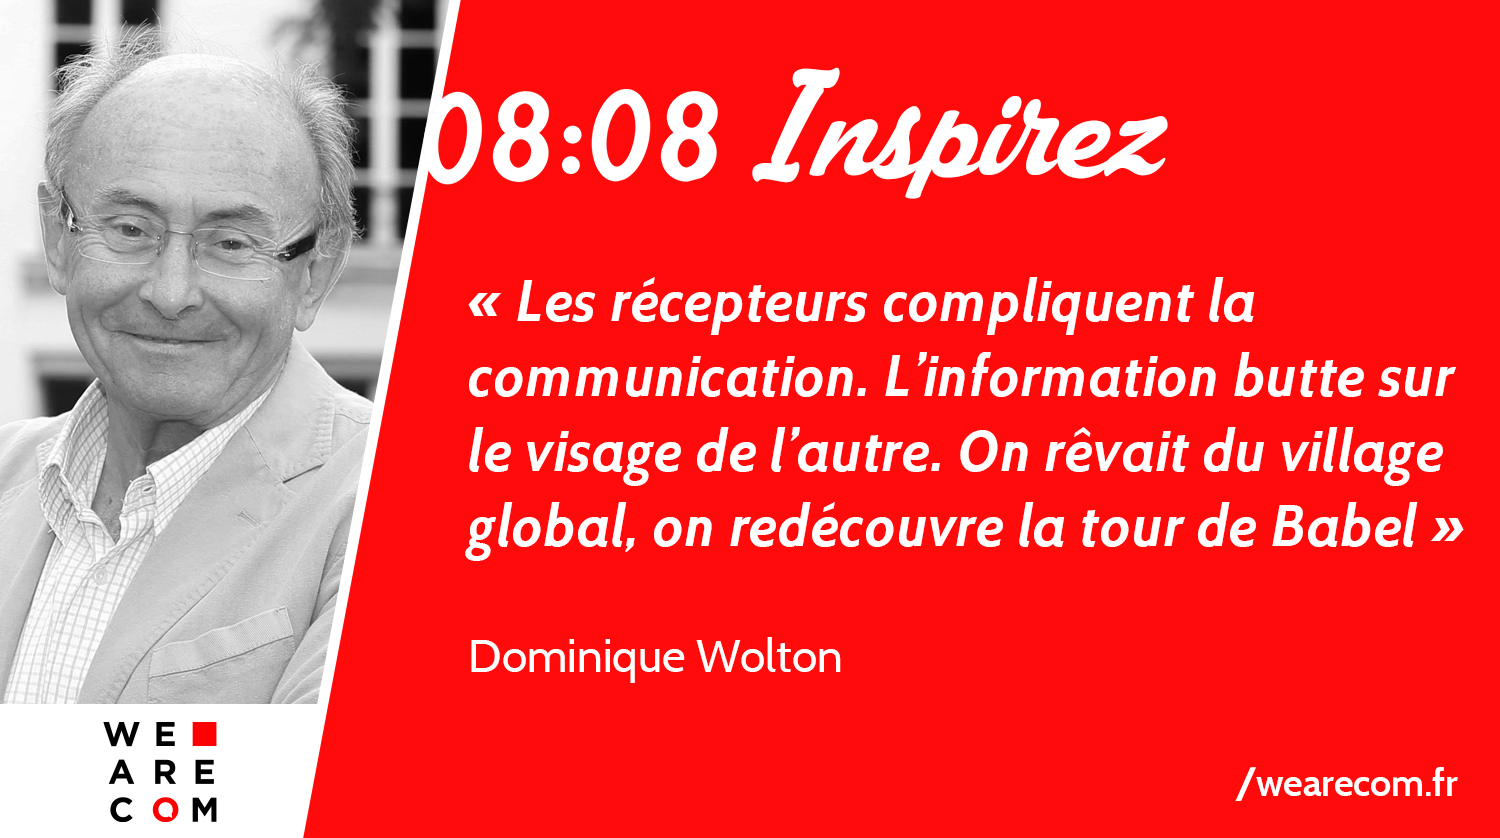 Dominique-Wolton_TourdeBabel_citation_communication